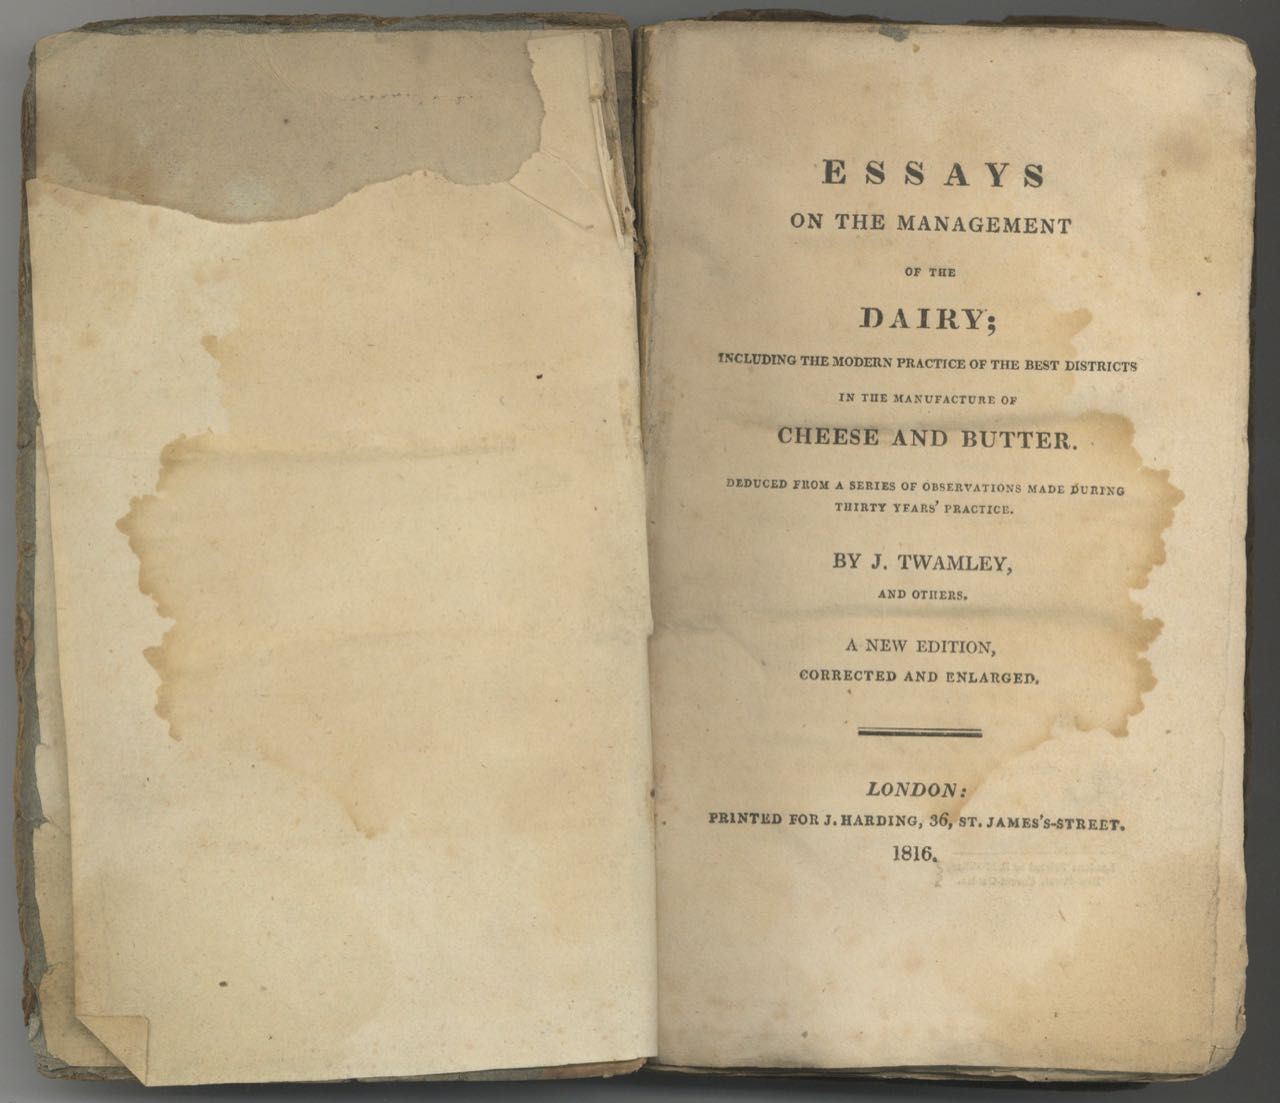 Essays on the Management of the Dairy; Including the Modern Practice of the Best Districts in the Manufacture of Cheese and Butter..., new edition, corrected & enlarged. J. Twamley.